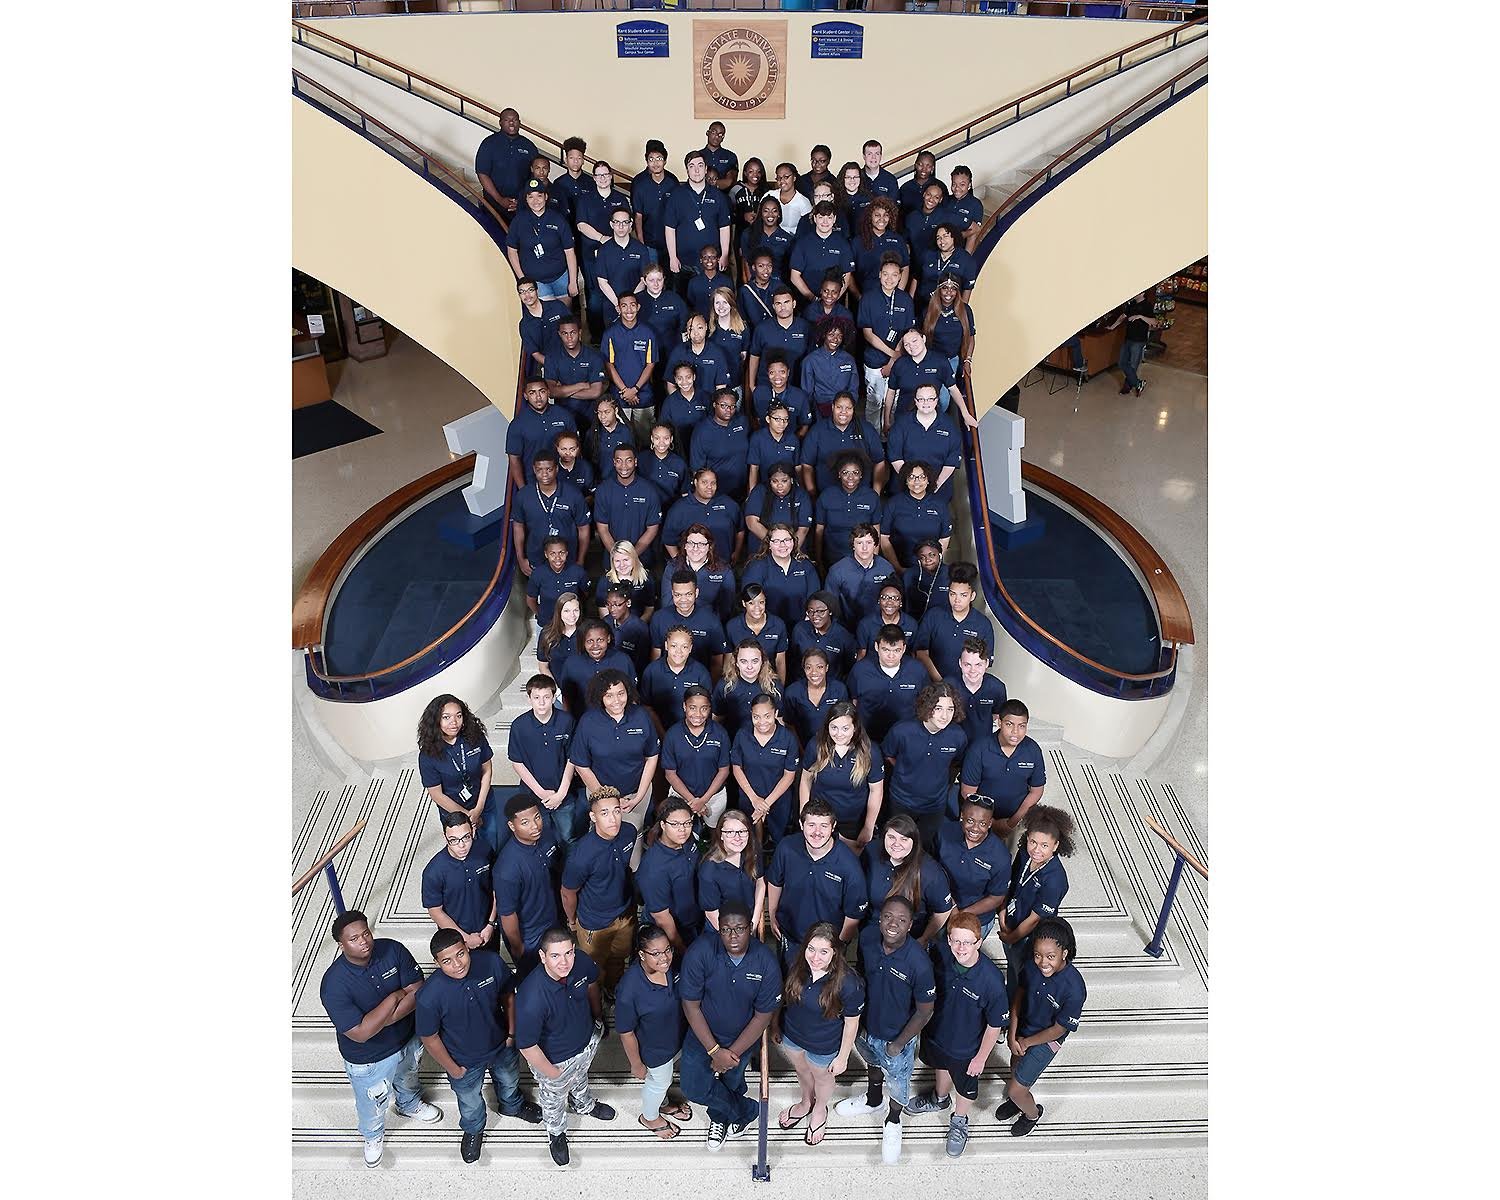 Upward Bound Photo